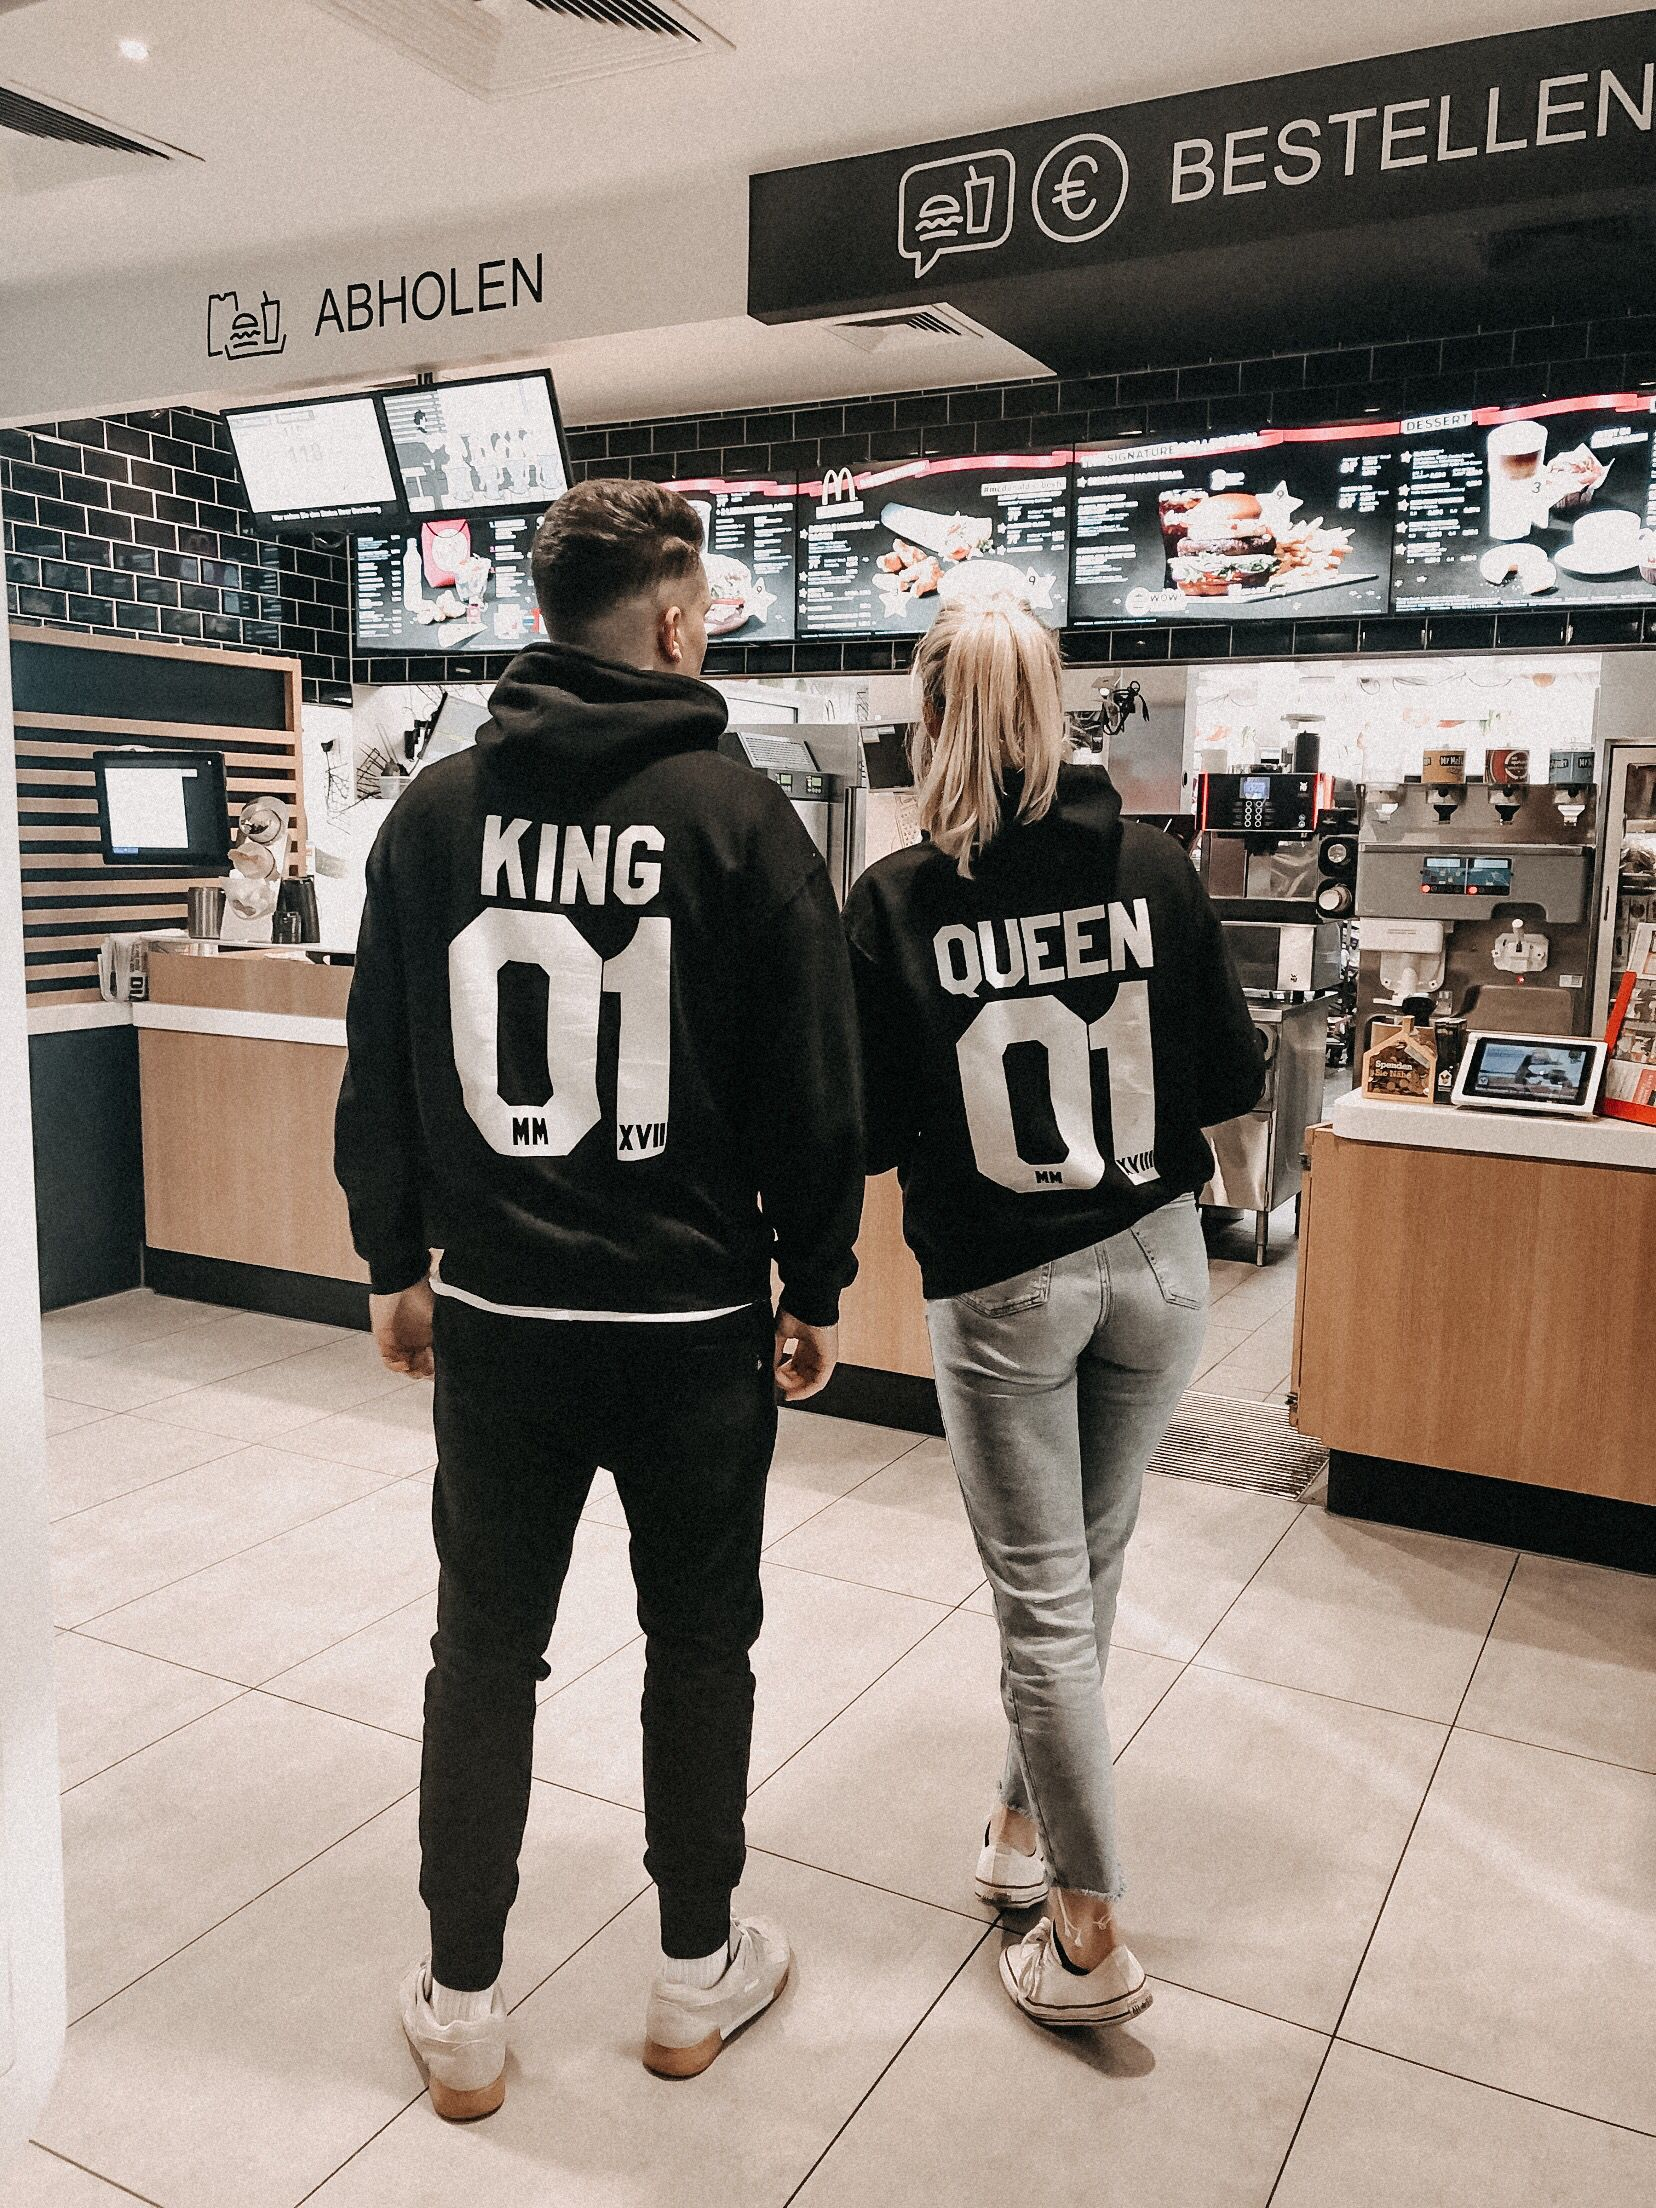 70869d8ea 2er Set Hamburger Haenger ® King 01 & Queen 01 Hoodie Schwarz Weiss |  Friend pictures | Cute couple outfits, Couple tshirts, Fashion couple